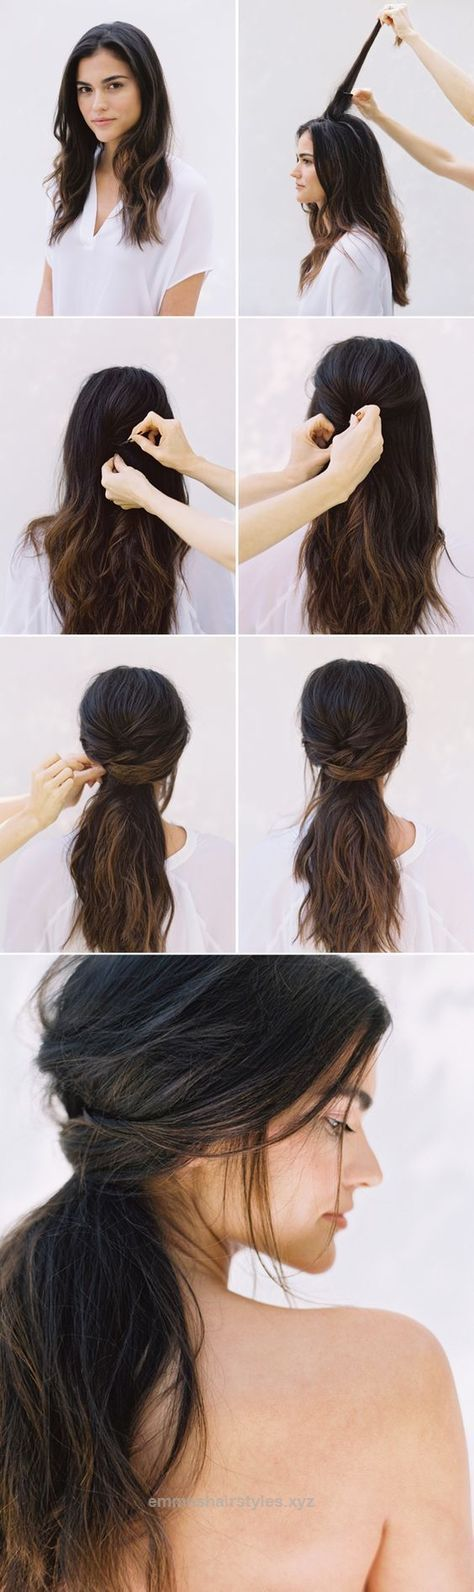 Incredible DIY Hairstyle // DIY half up down wedding hair.  The post  DIY Hairstyle // DIY half up down wedding hair….  appeared first on  Emme's Hairstyles .